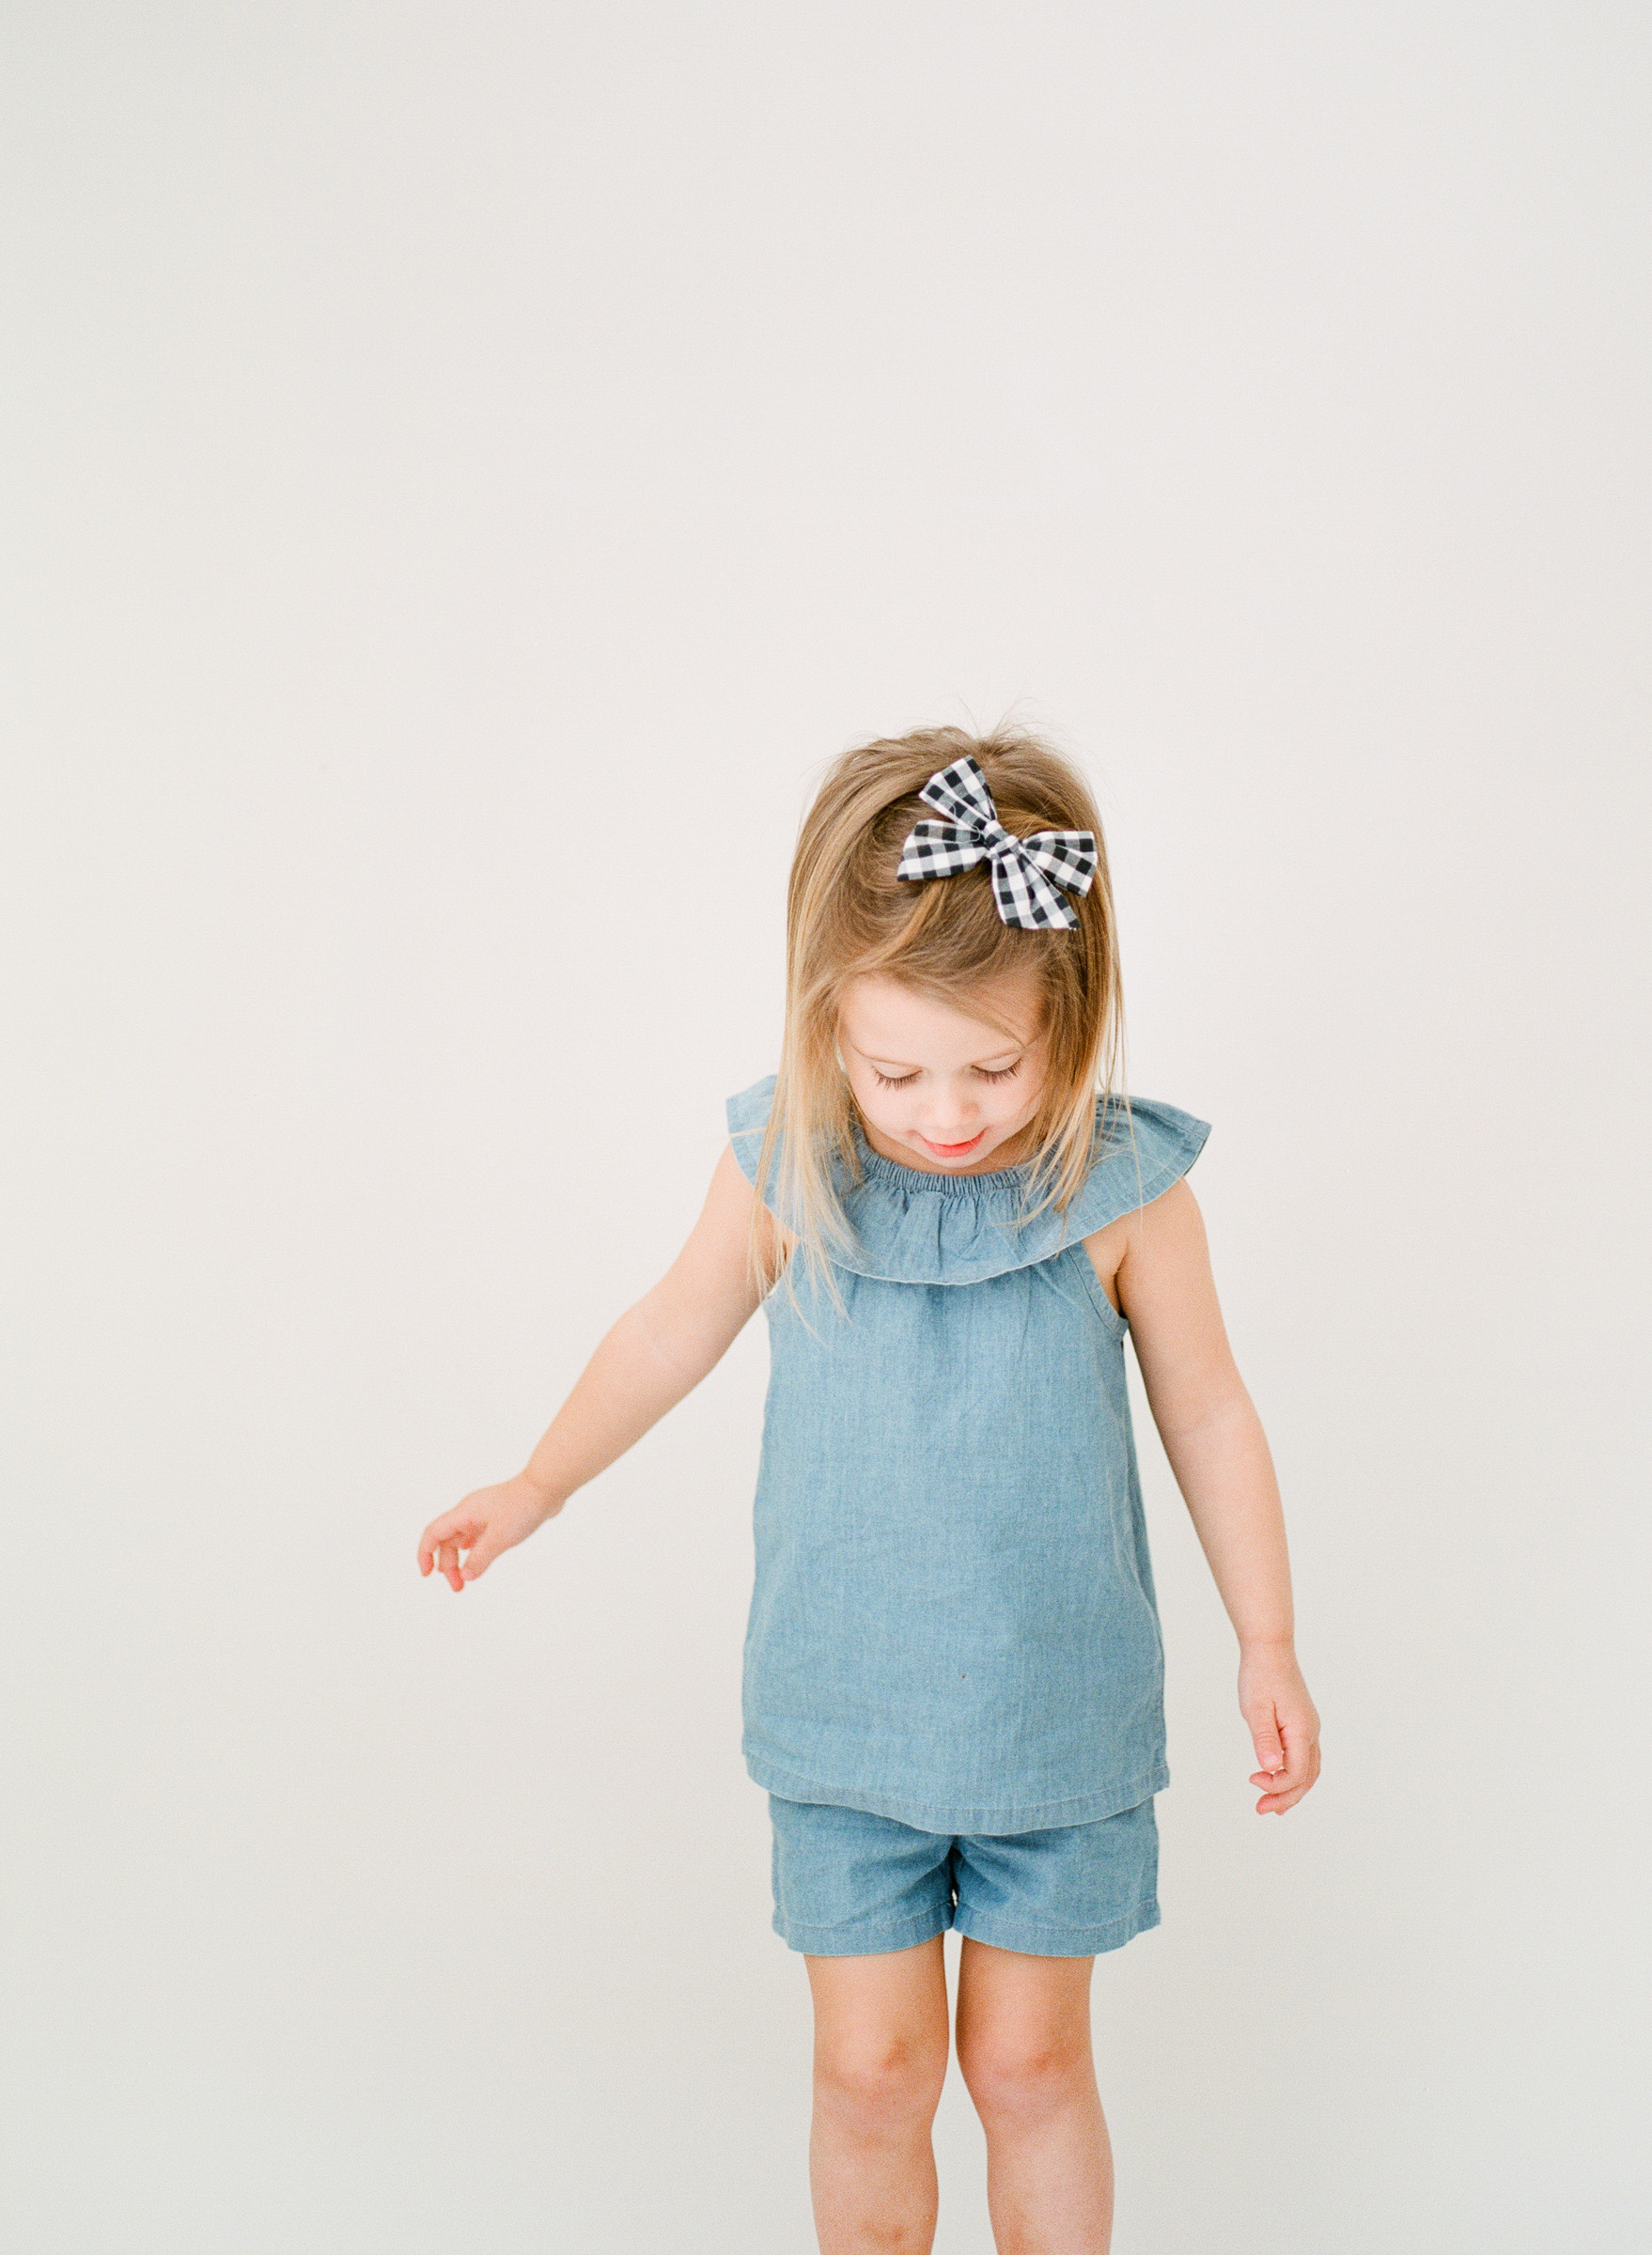 professional-studio-children-photographer-raleigh-wake-forest